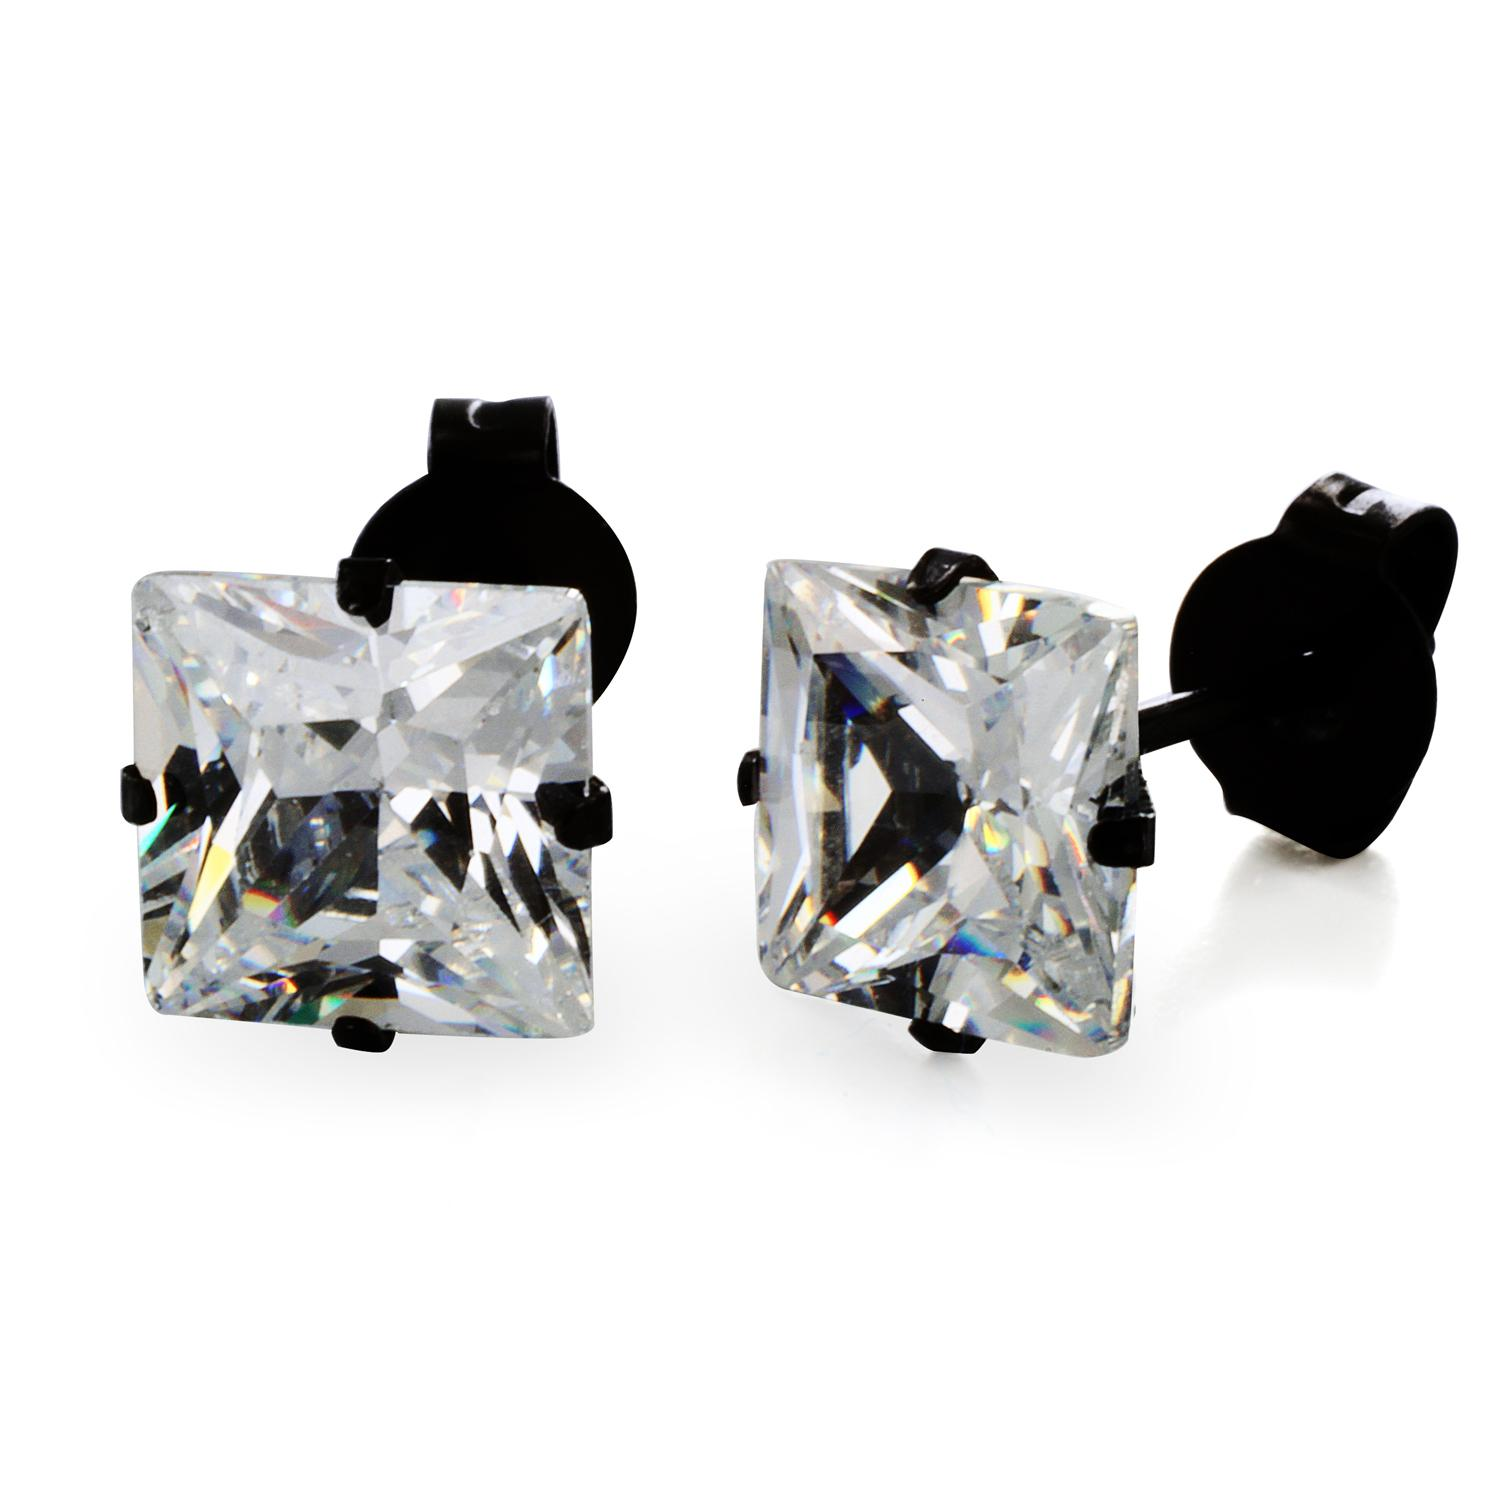 Black Plated Stainless Steel Stud Earrings with Princess Cut Clear CZ - 7 mm